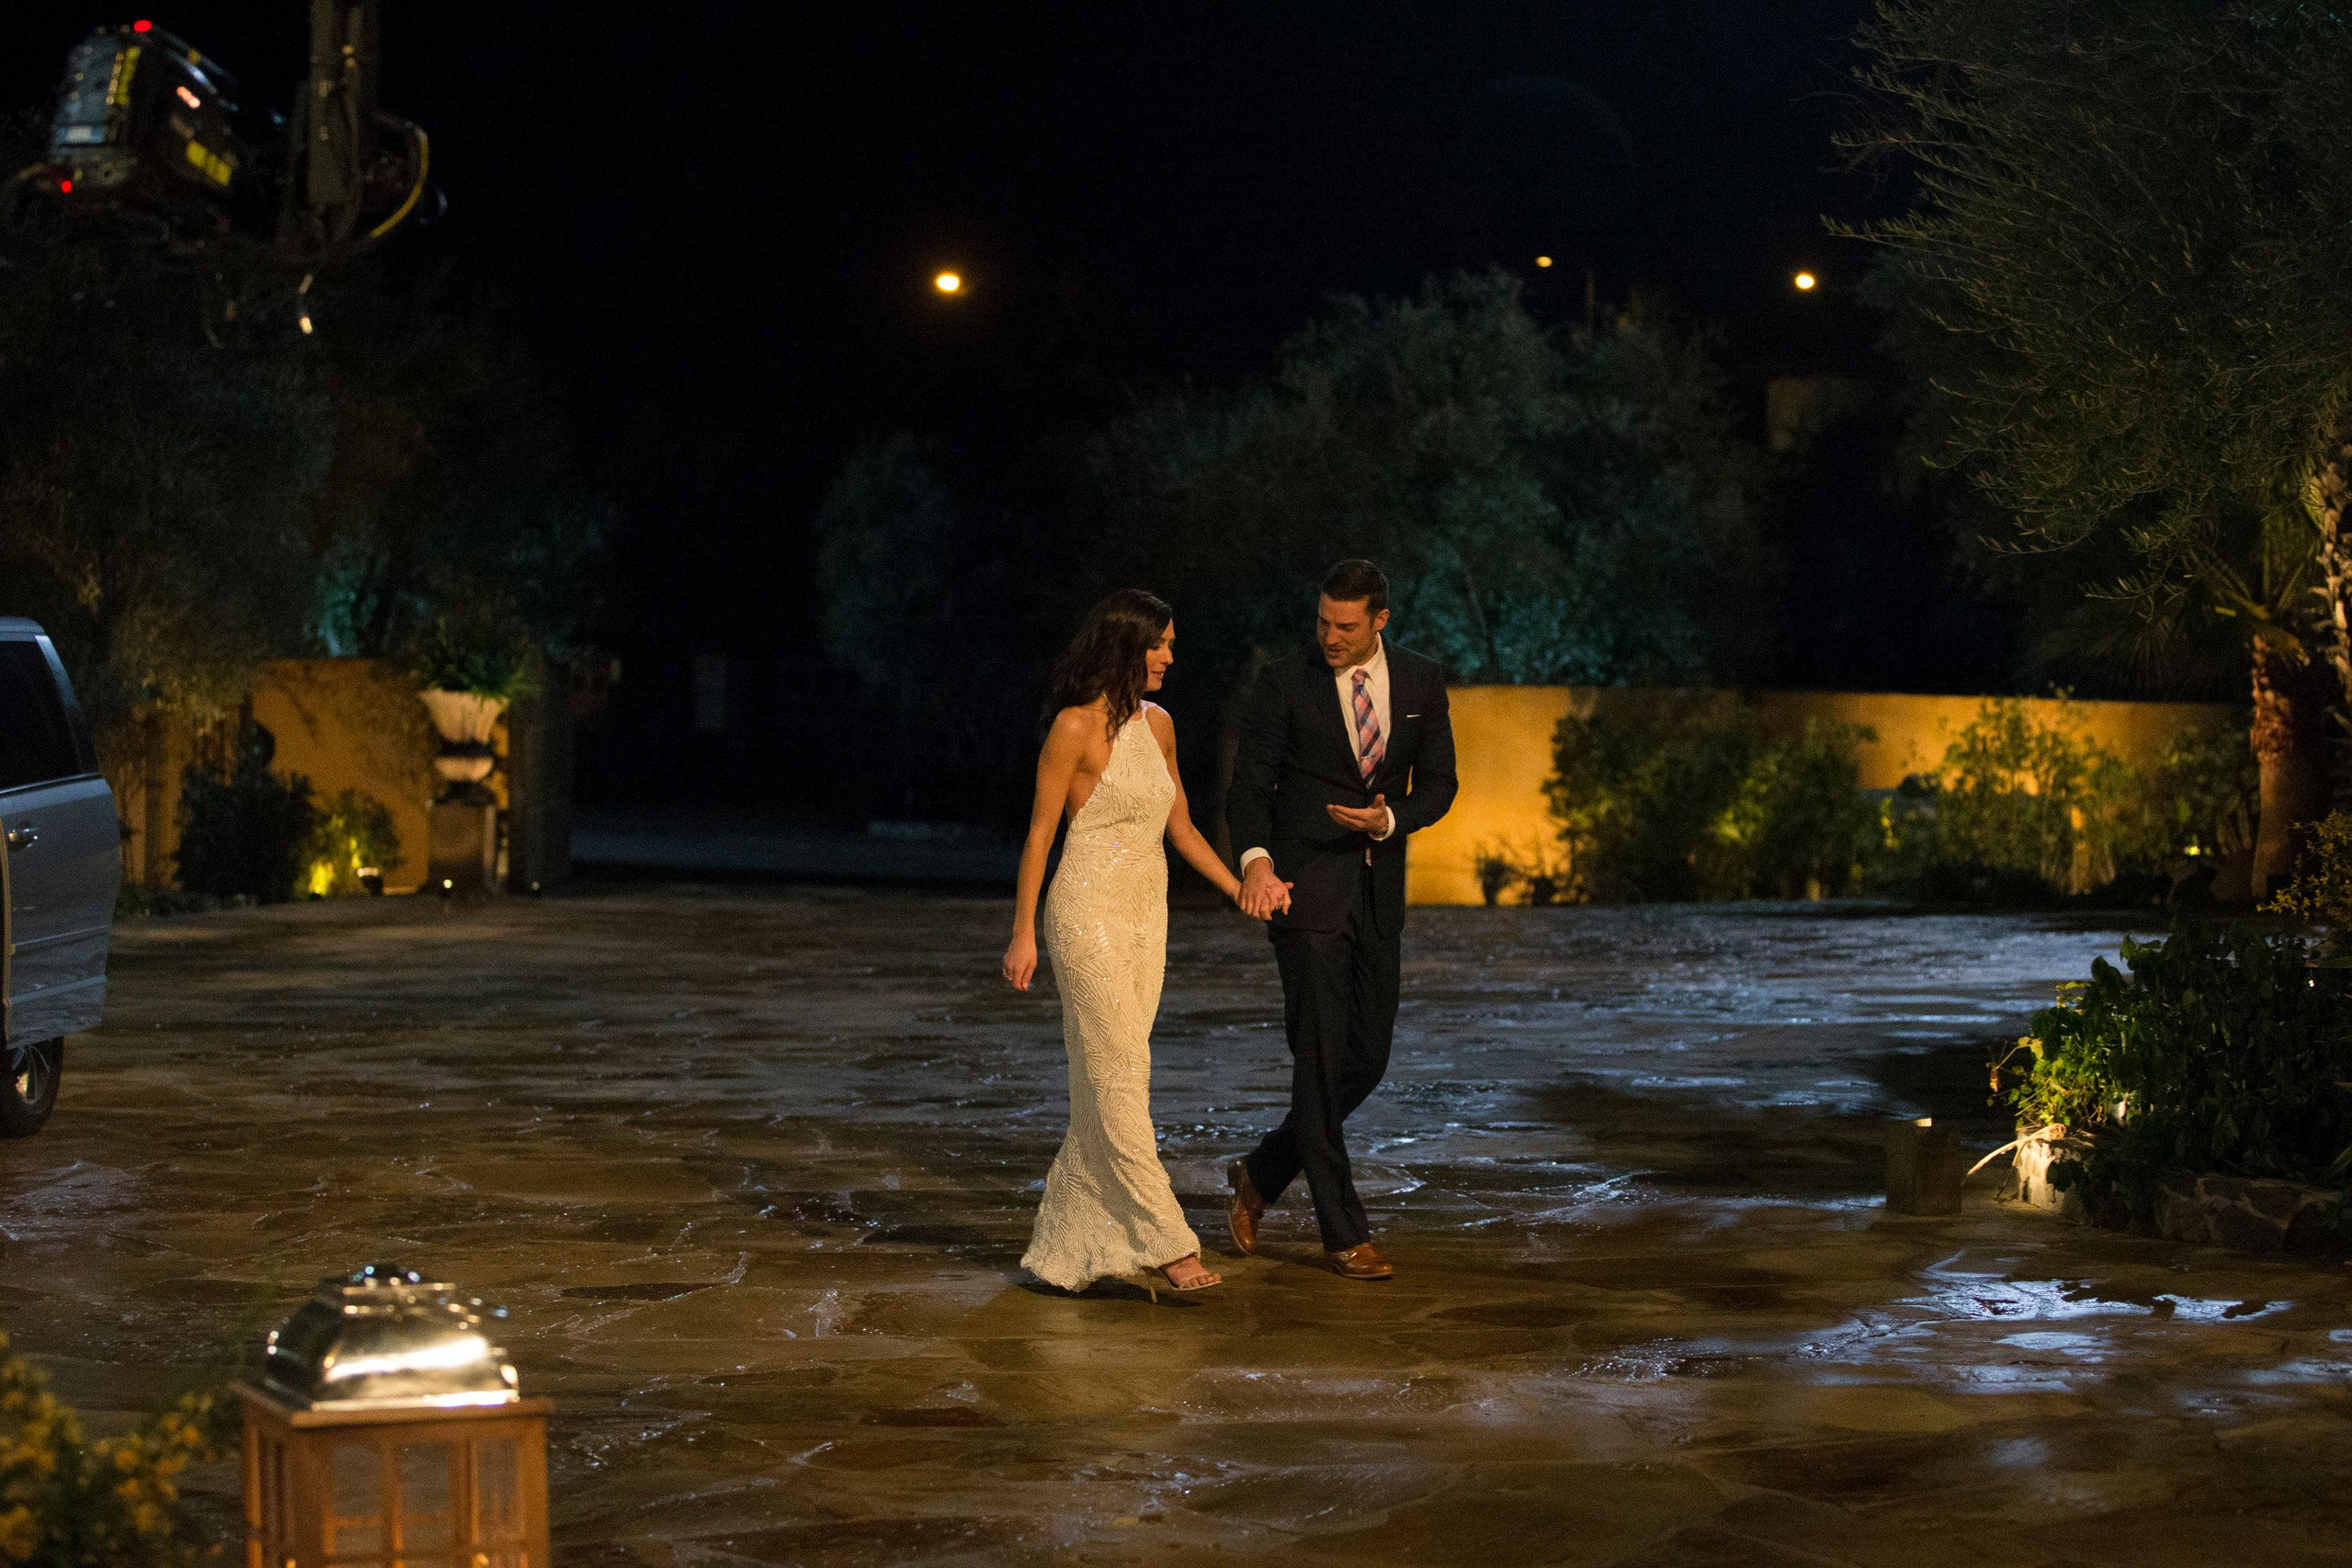 THE BACHELORETTE - 'Episode 1401' - Fan favorite Becca Kufrin captured Americas heart when she found herself at the center of one of the most gut-wrenching Bachelor breakups of all time. Now the Minnesota girl next door returns for a second shot at love and gets to hand out the roses, searching for her happily-ever-after in the 14th edition of ABCs hit series The Bachelorette, premiering MONDAY, MAY 28 (8:00-10:01 p.m. EDT), on The ABC Television Network. (Paul Hebert/ABC via Getty Images) BECCA KUFRIN, GARRETT